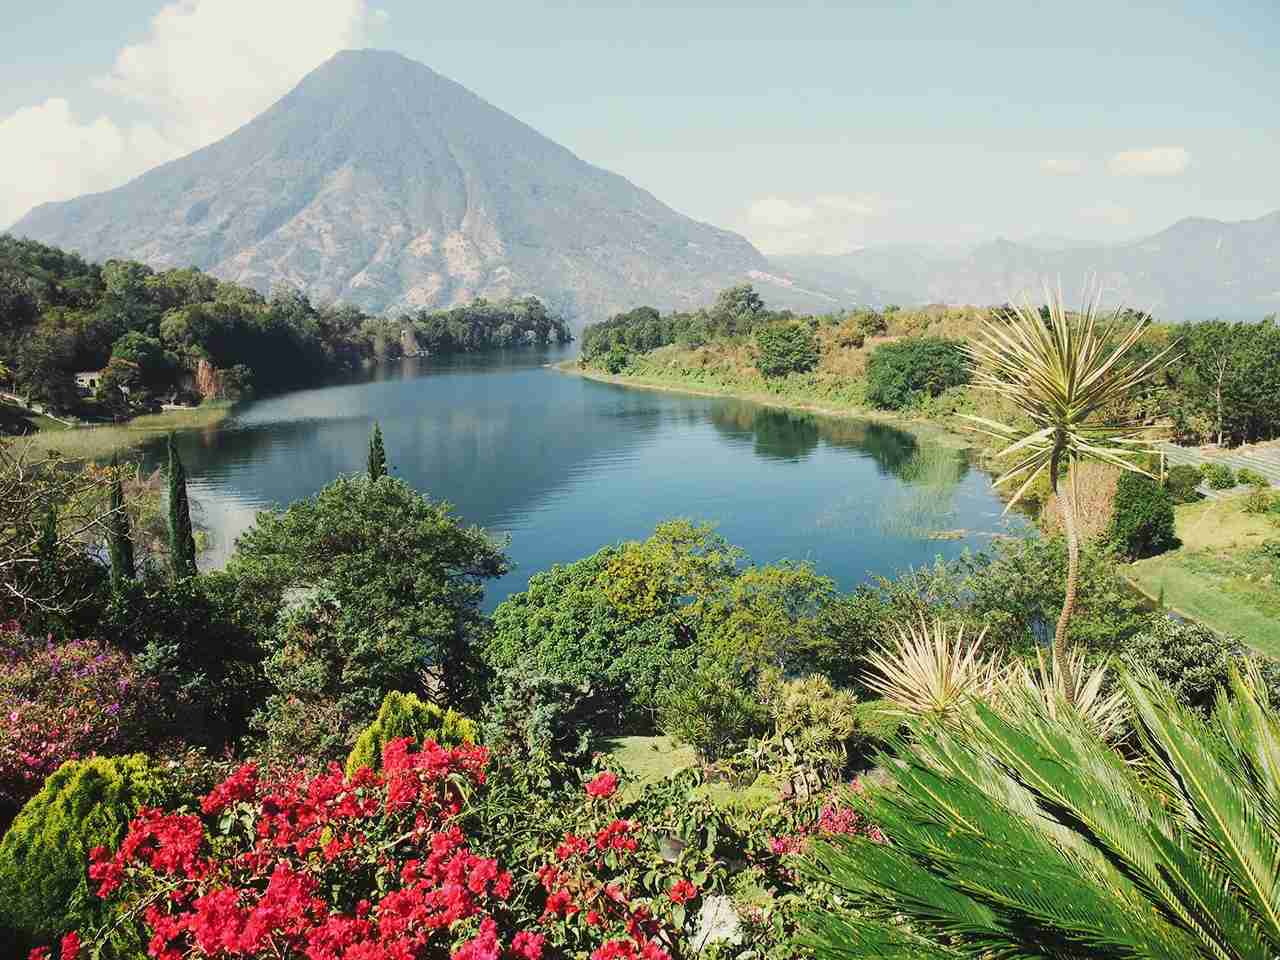 Highland at Lake Atitlan in Guatemala. (Photo by Getty Images)